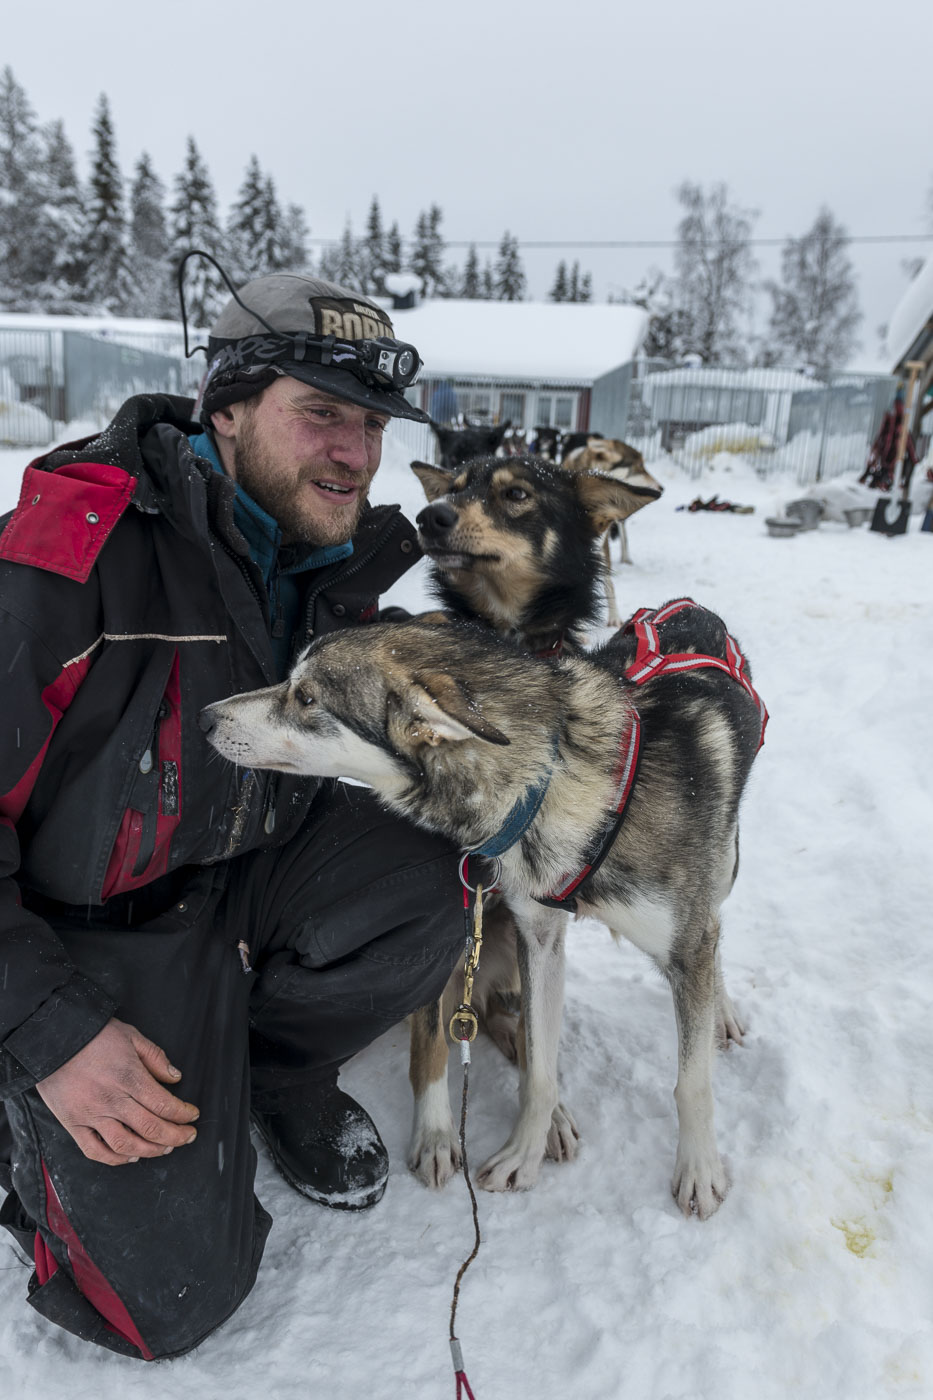 Petter Karlsson checks and pets his lead dog before a training run in the Vindelfjallen Nature Preserve, Sweden.